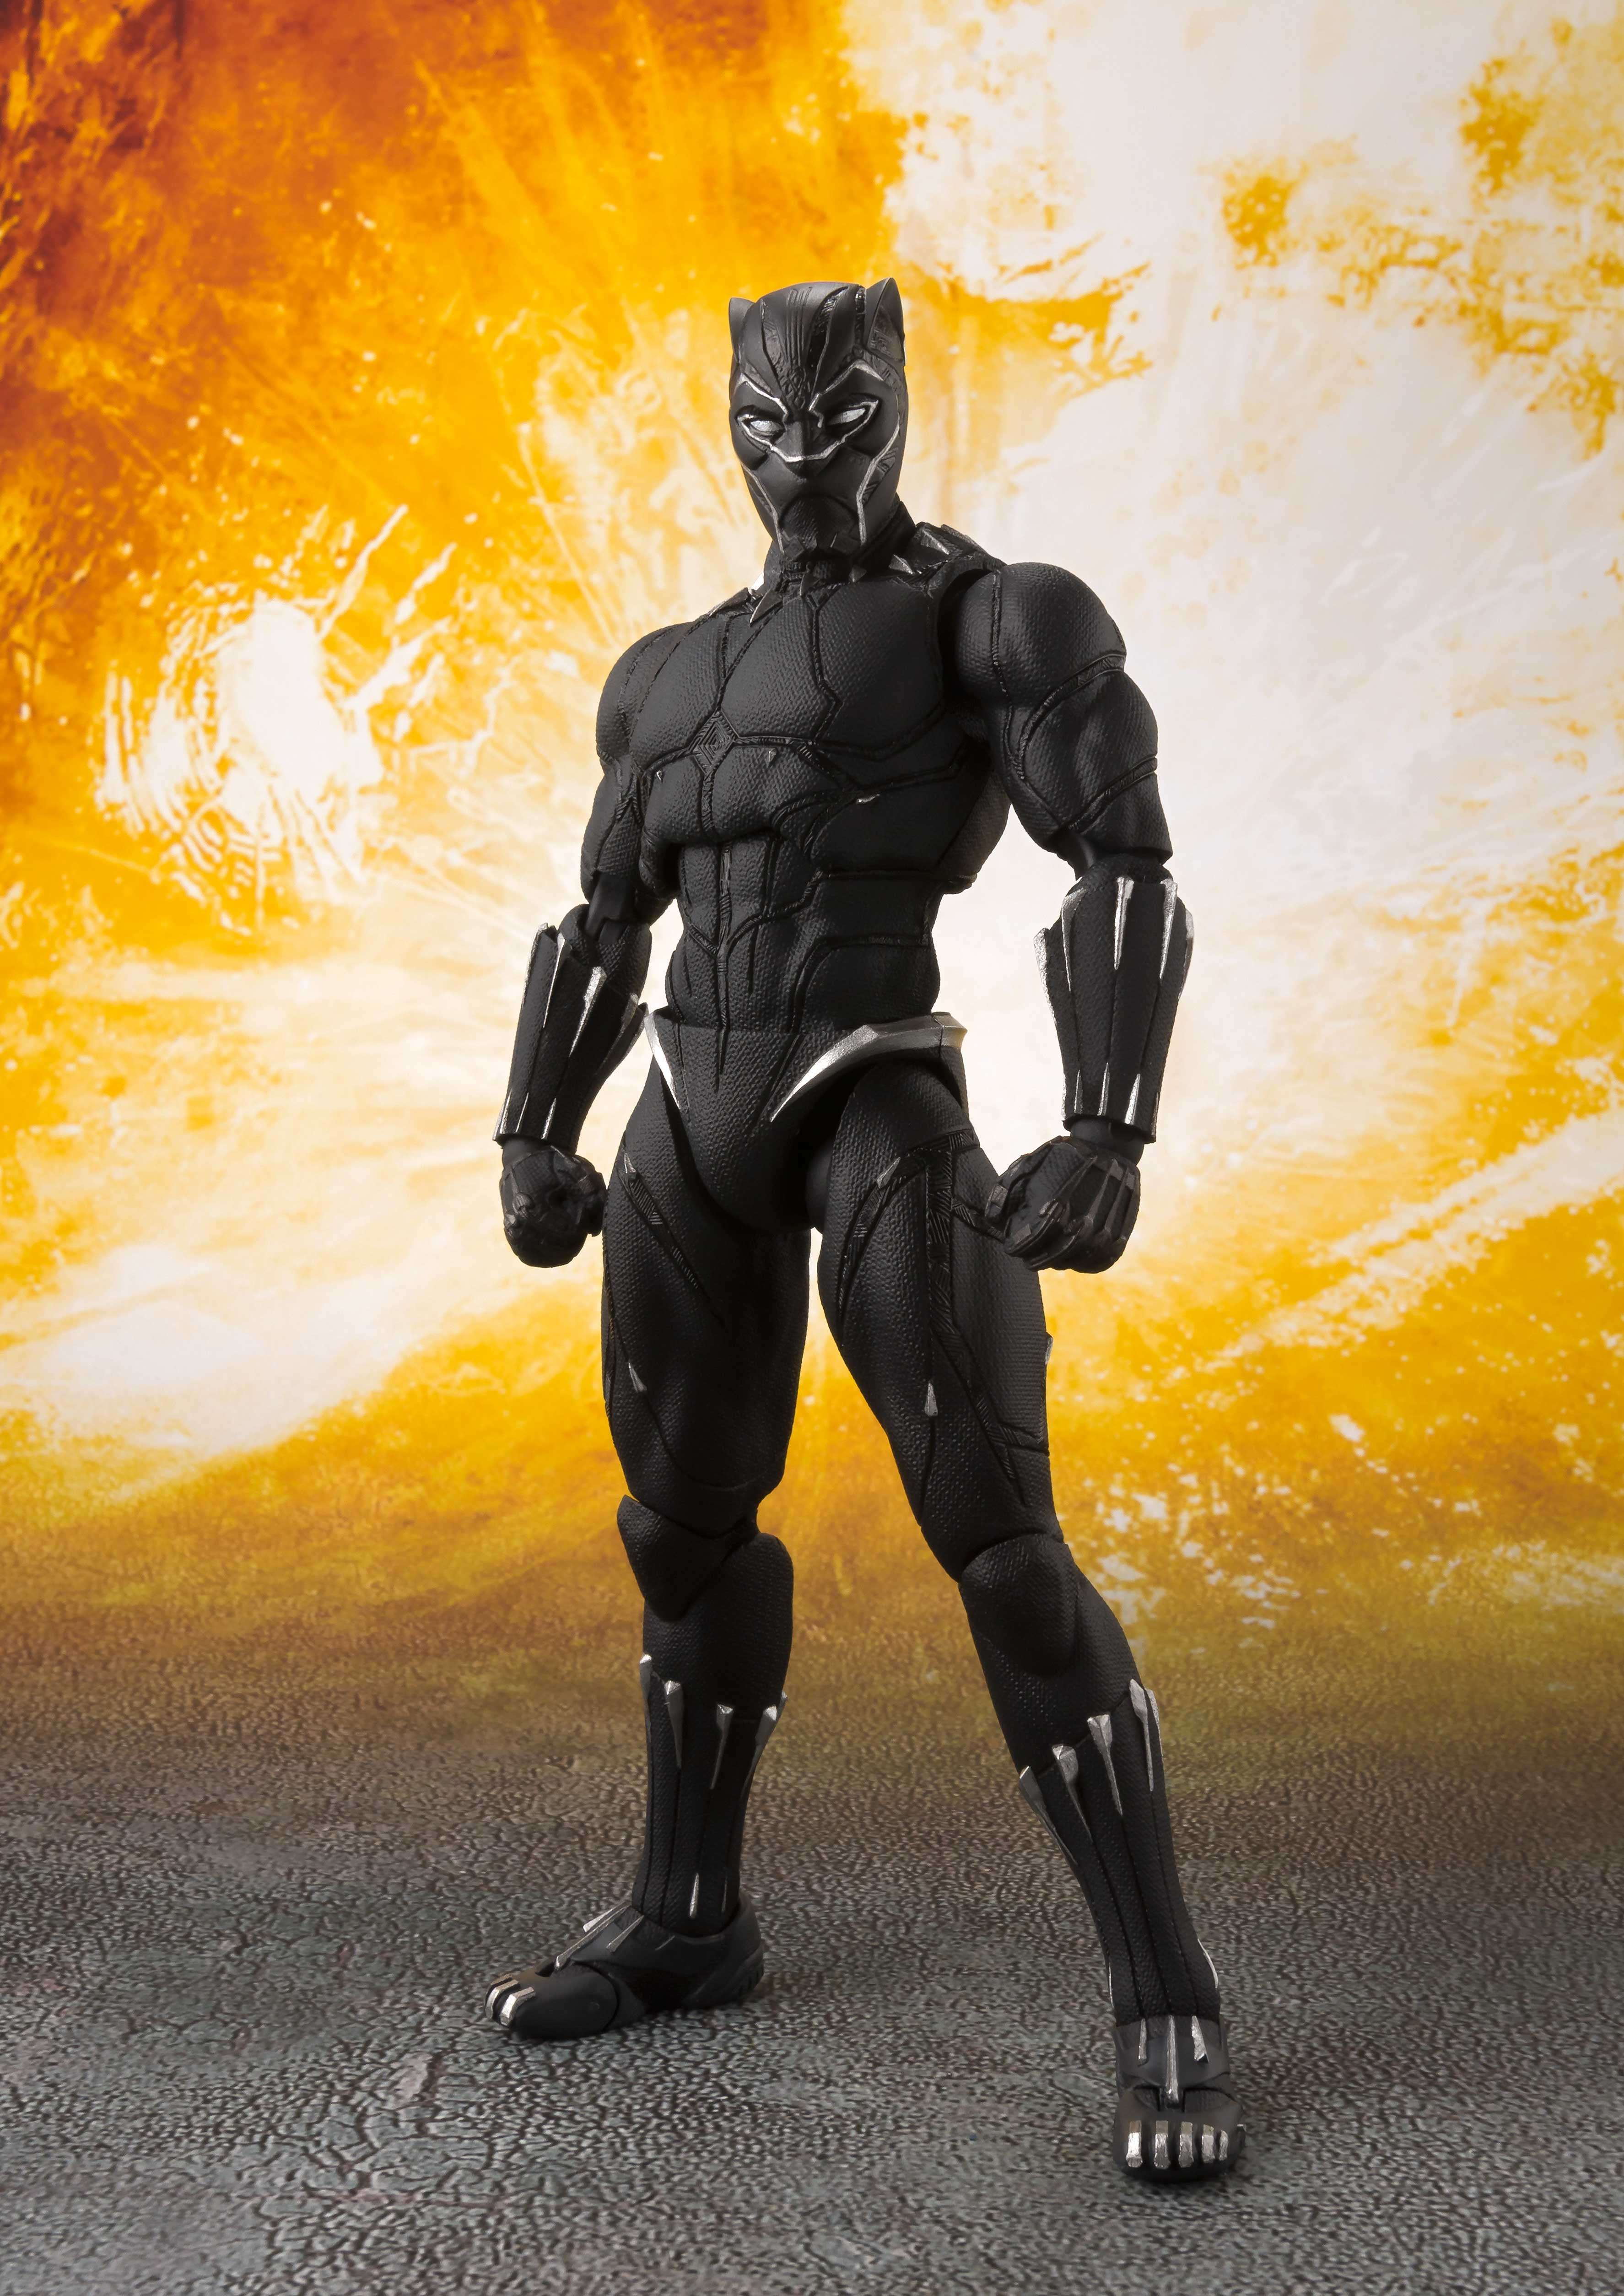 [Pre-Order] S.H. Figuarts: Avengers: Infinity War - Black Panther & Tamashii Effect Rock